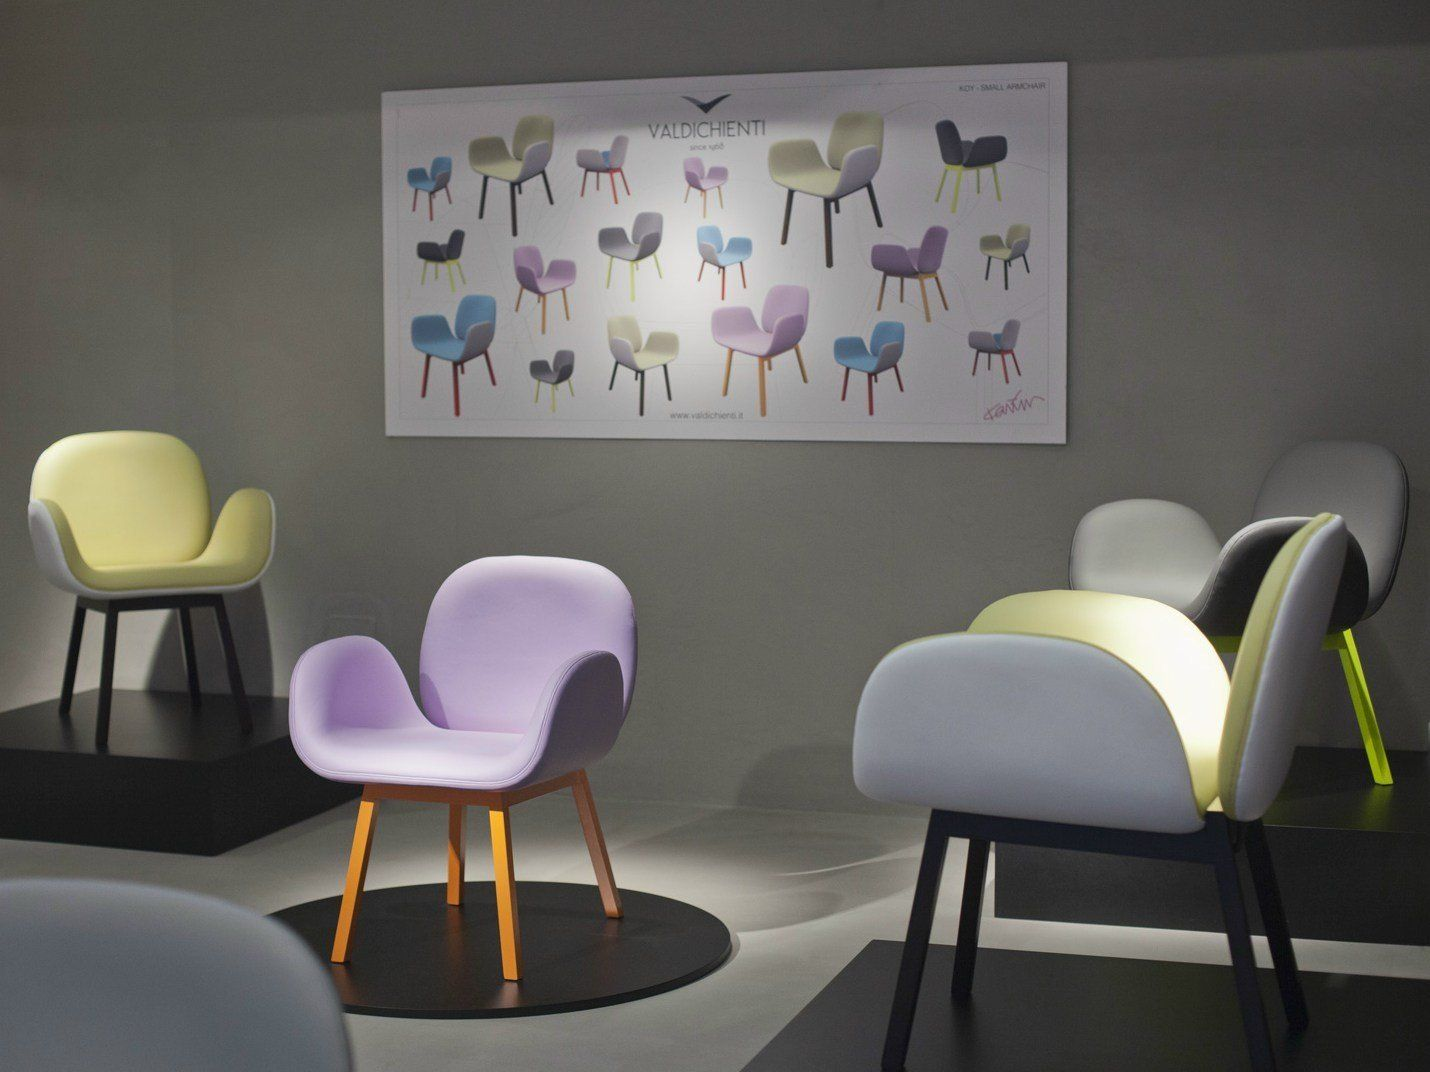 The new Valdichienti creations on show at iSaloni